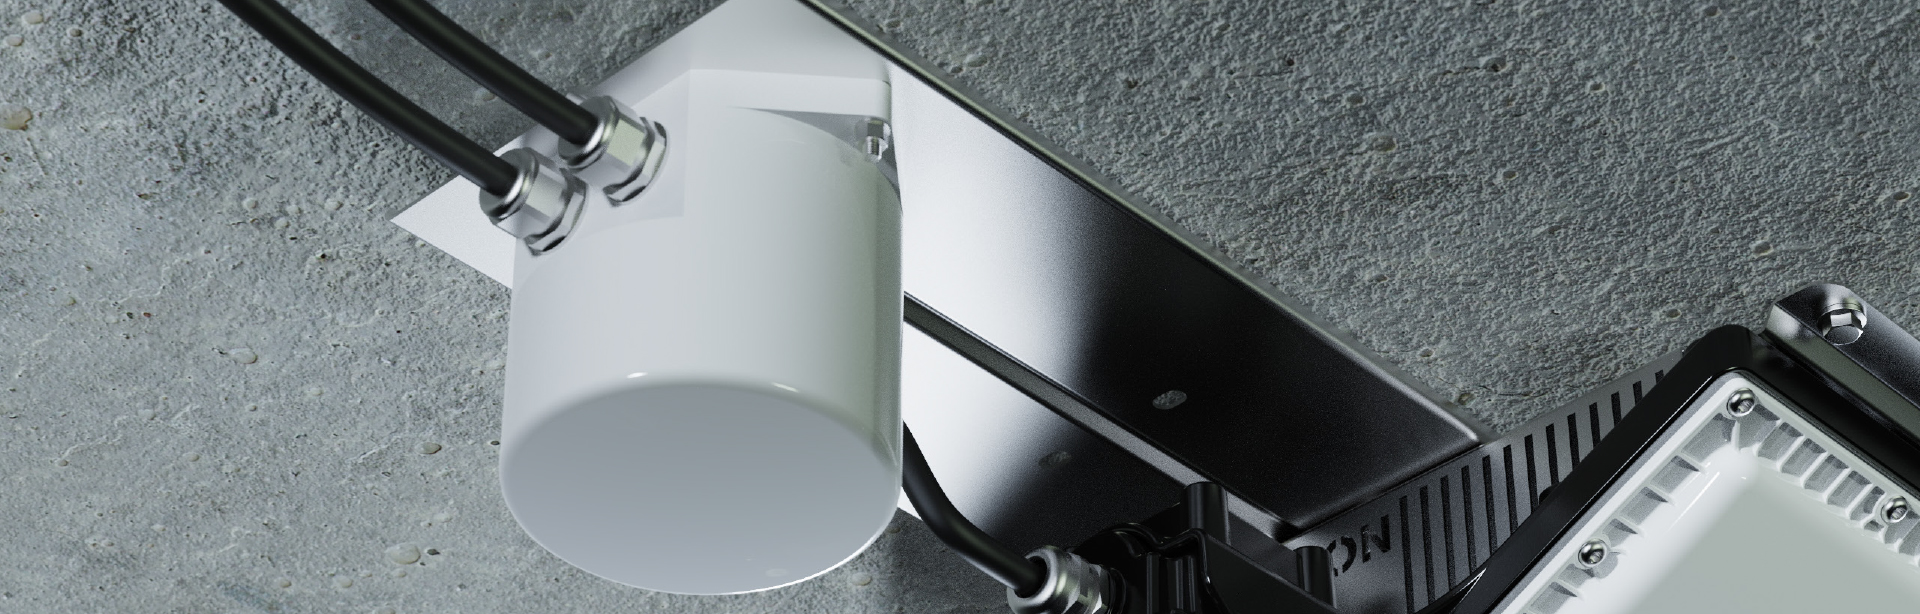 Allows for convenient mains in-out connection at the luminaire without modifying the luminaire.